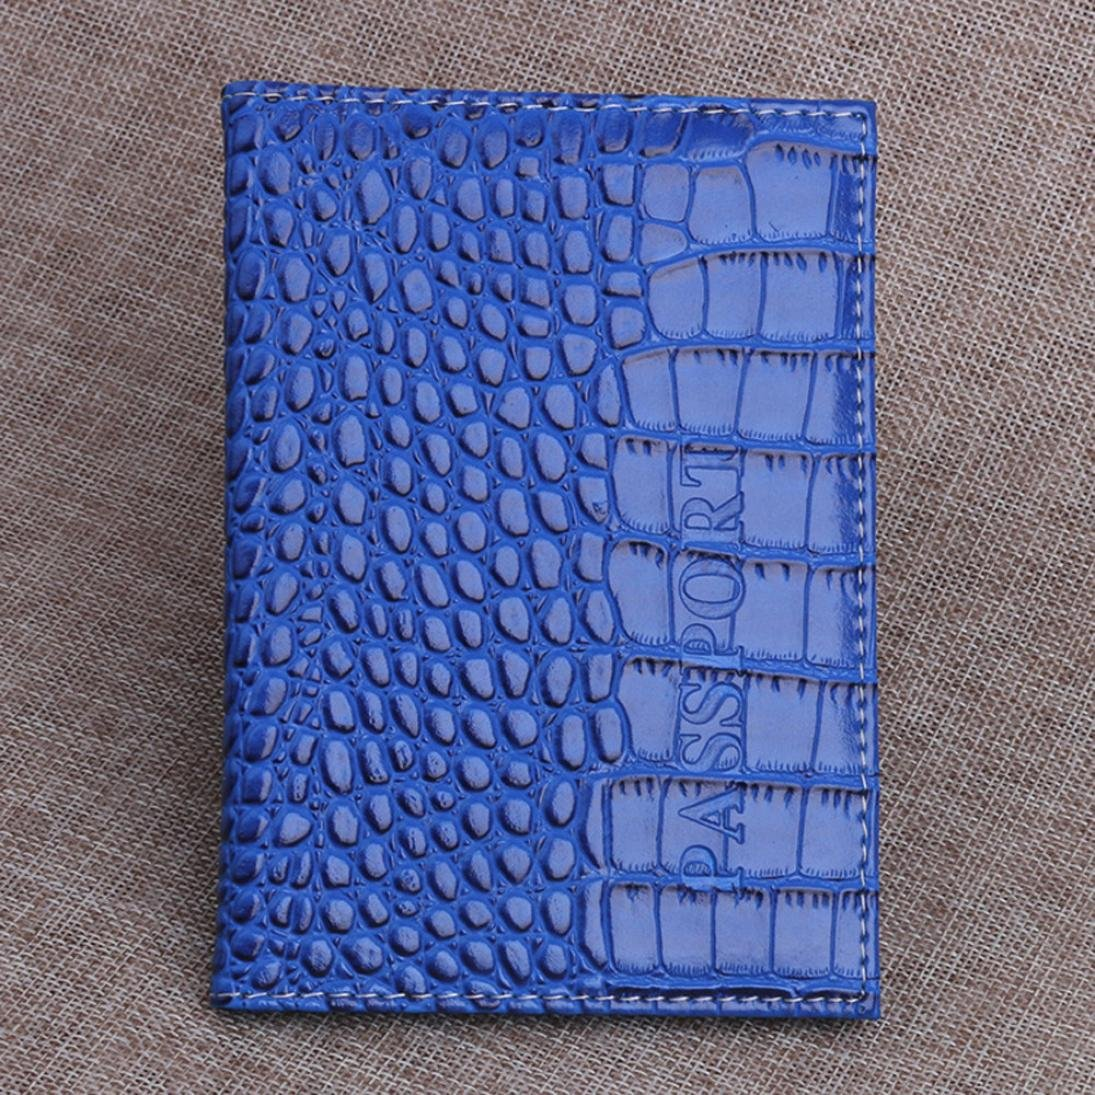 Passport Holder, Aobiny Protector Wallet Business Card Soft Passport Cover Leather (Blue) by Aobiny (Image #2)